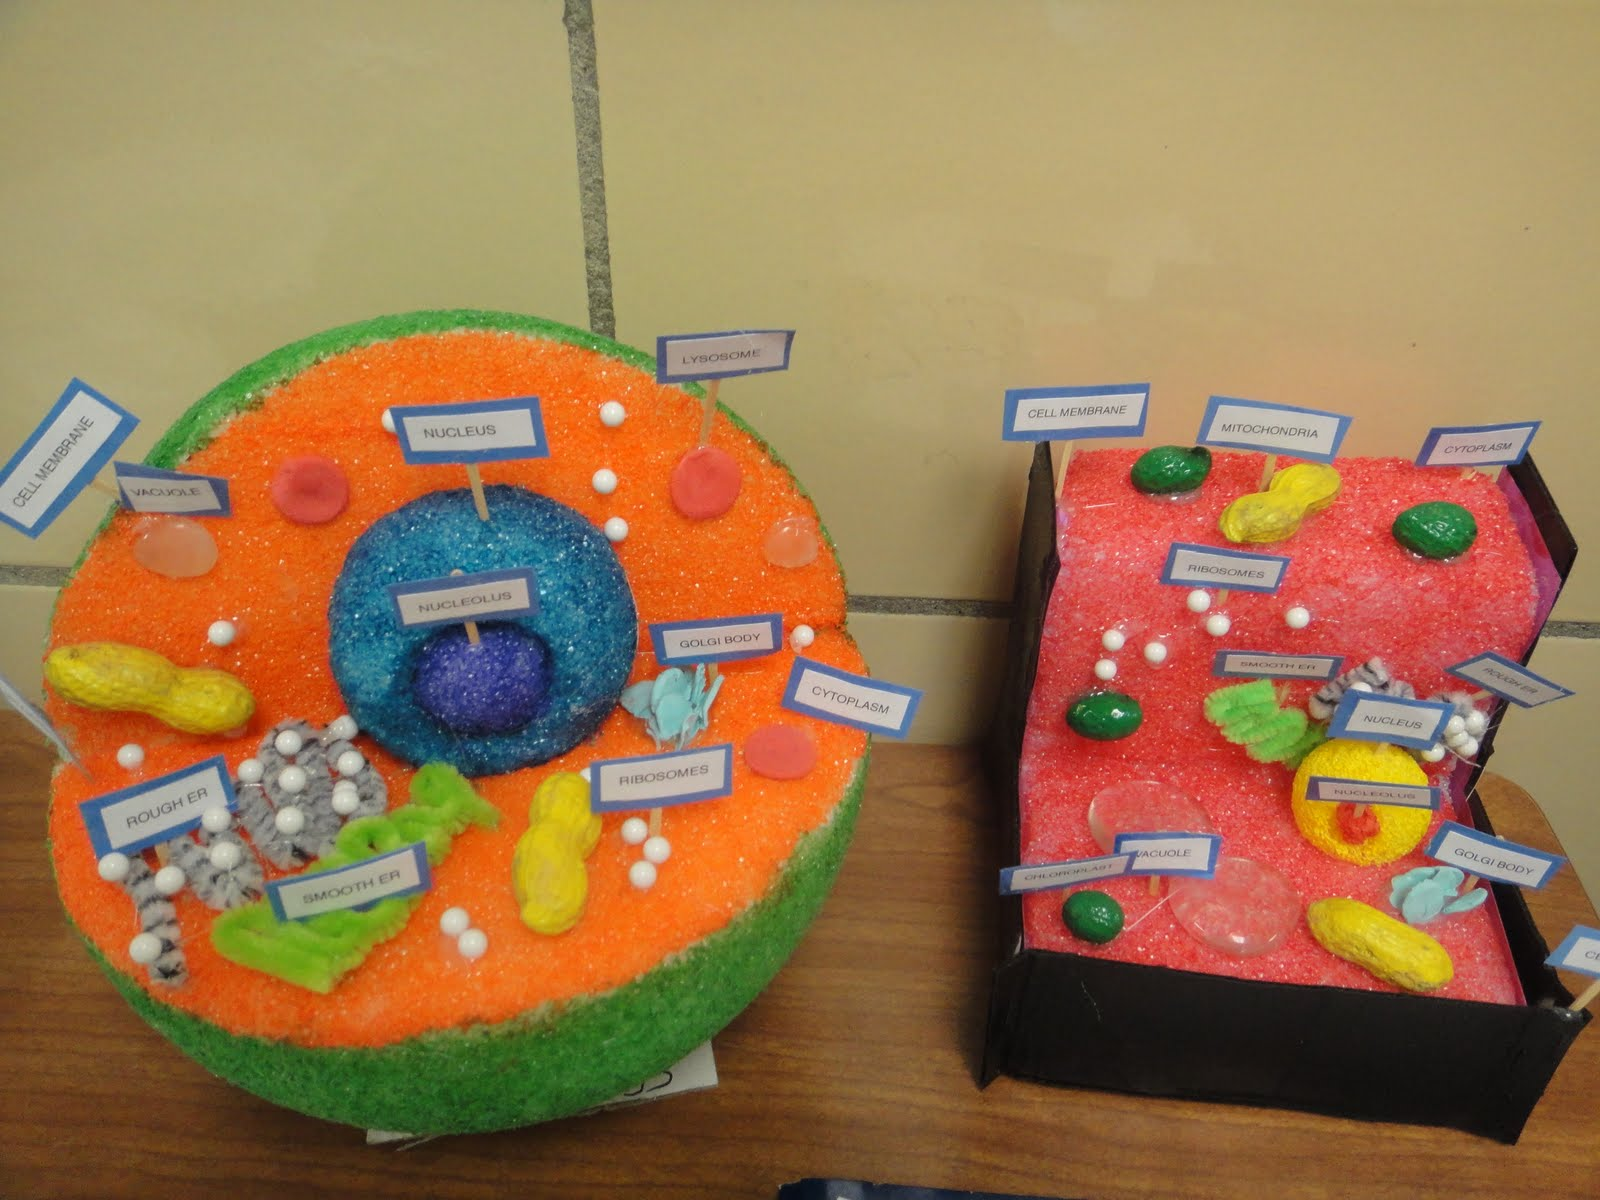 Plant Cell Diagram Project Typable Venn Katie 39s Klassroom January 2012